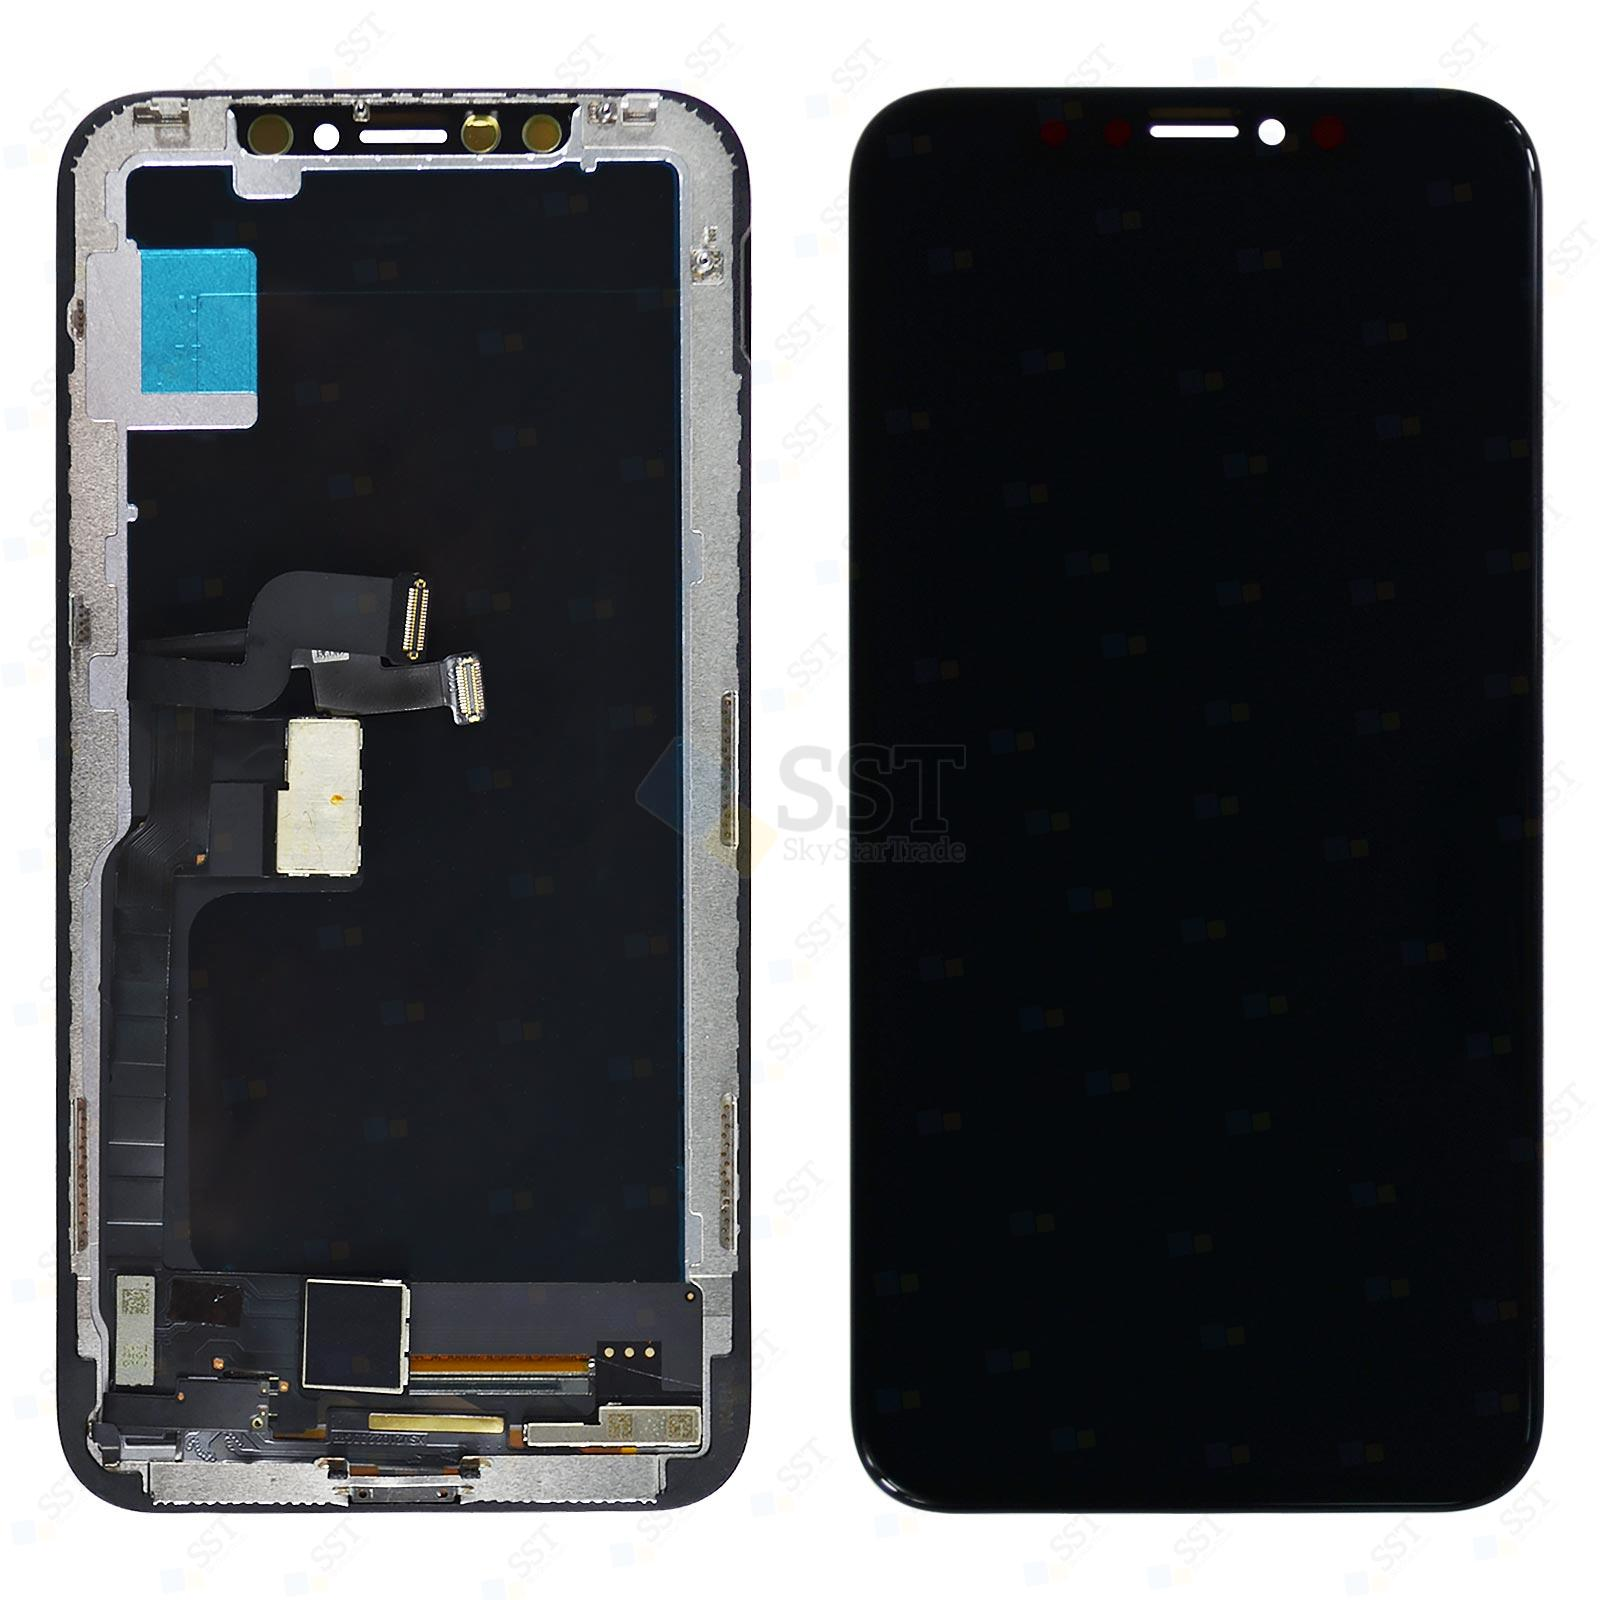 iPhone X 10 A1865 A1901 A1902 LCD Screen Digitizer, Black, High Quality